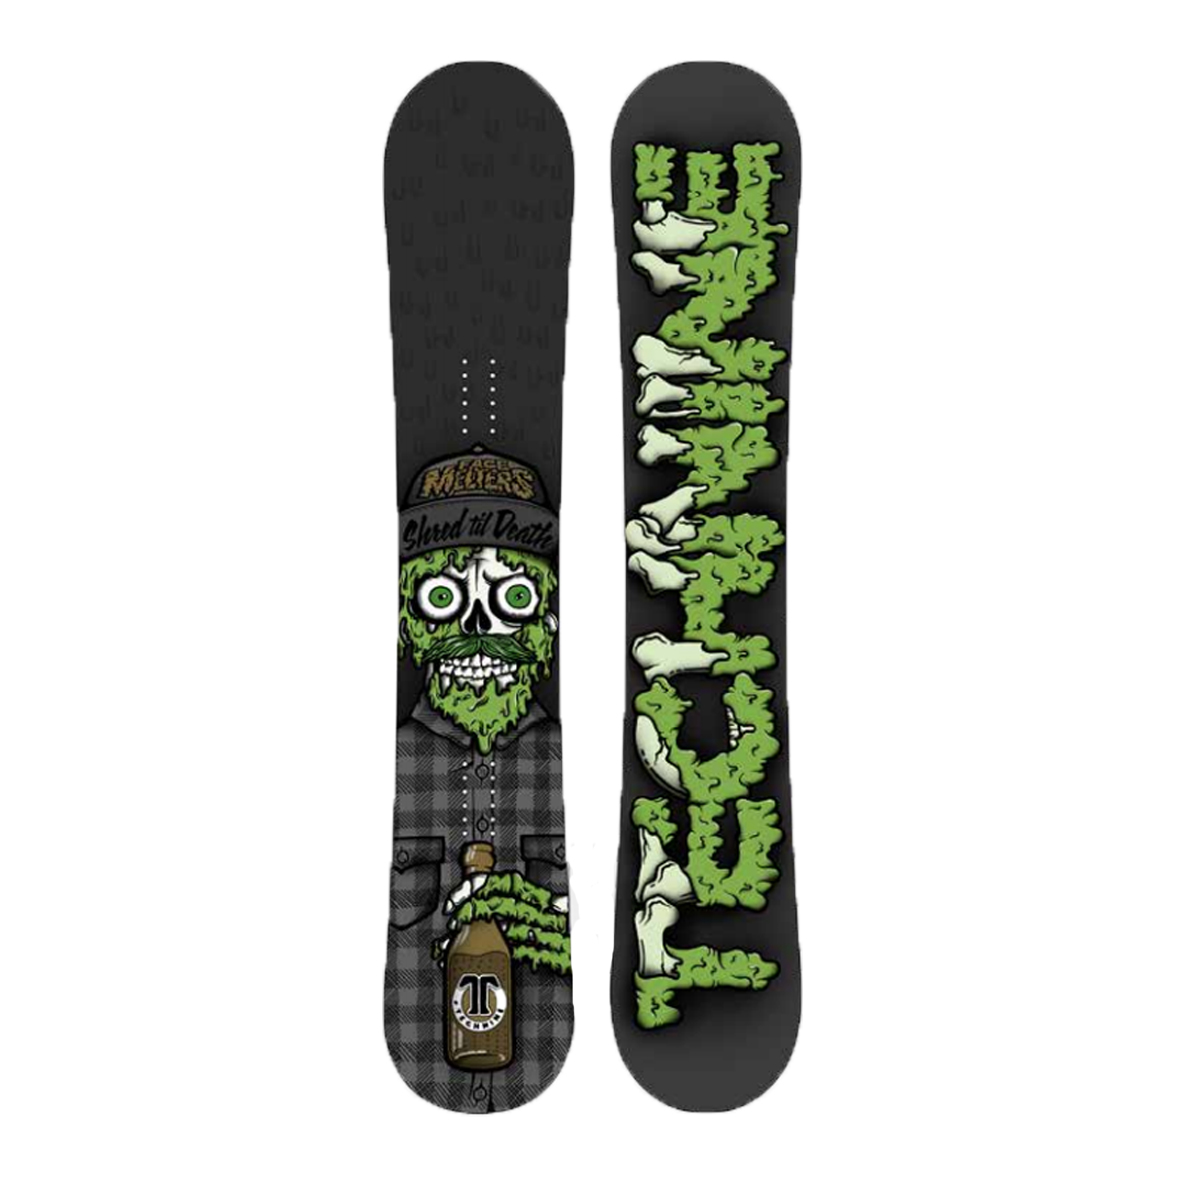 Сноуборд Technine S.T.D SHRED TIL DEATH BLACK F18